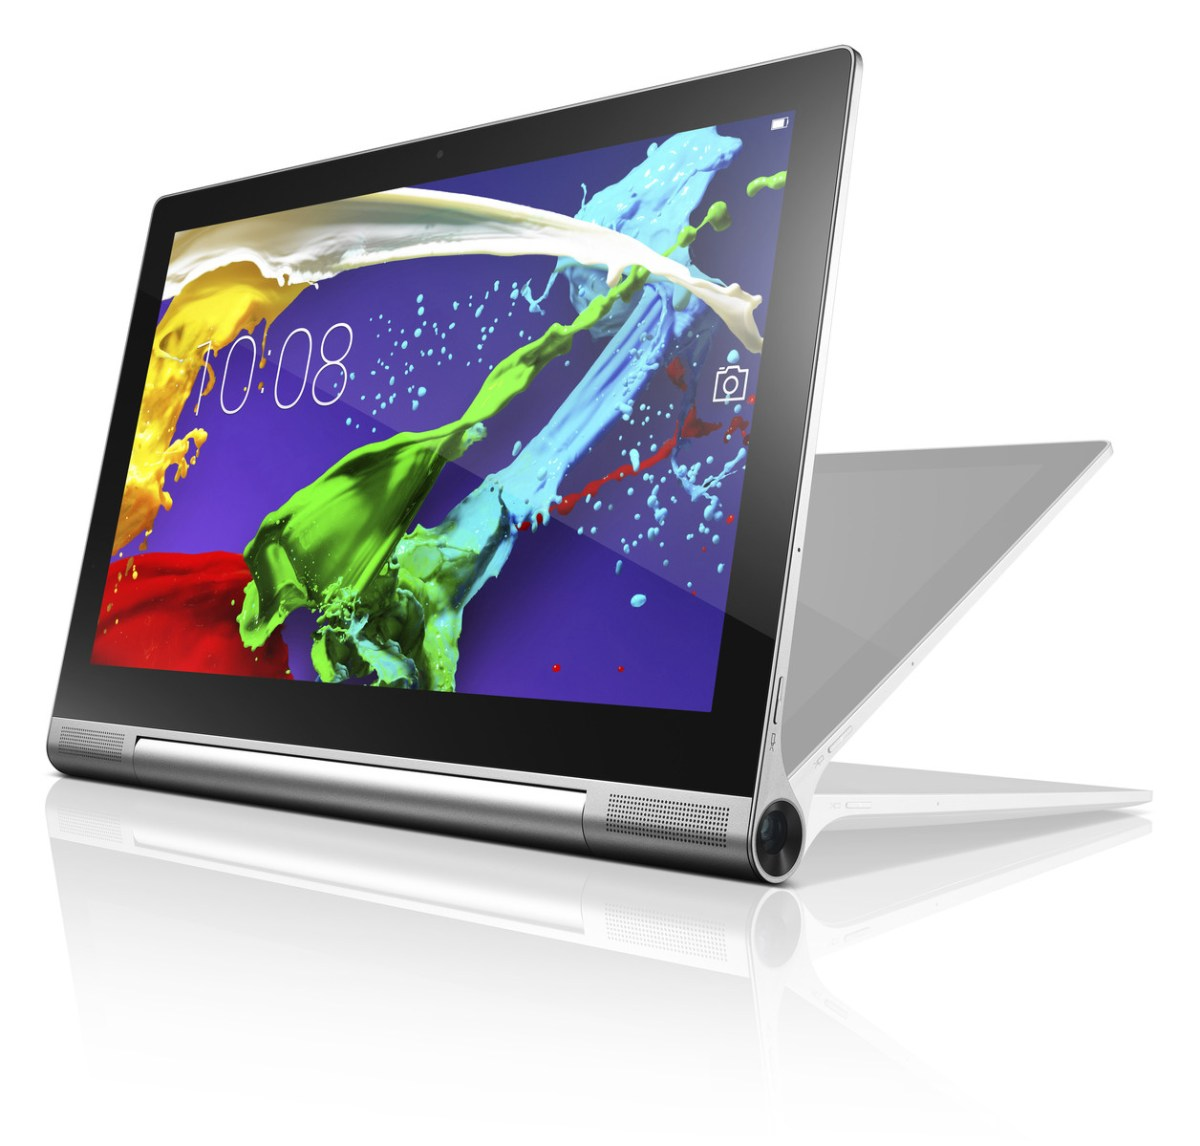 lenovo-tablet-yoga-tablet-2-pro-13-inch-android-front-side-projector-2